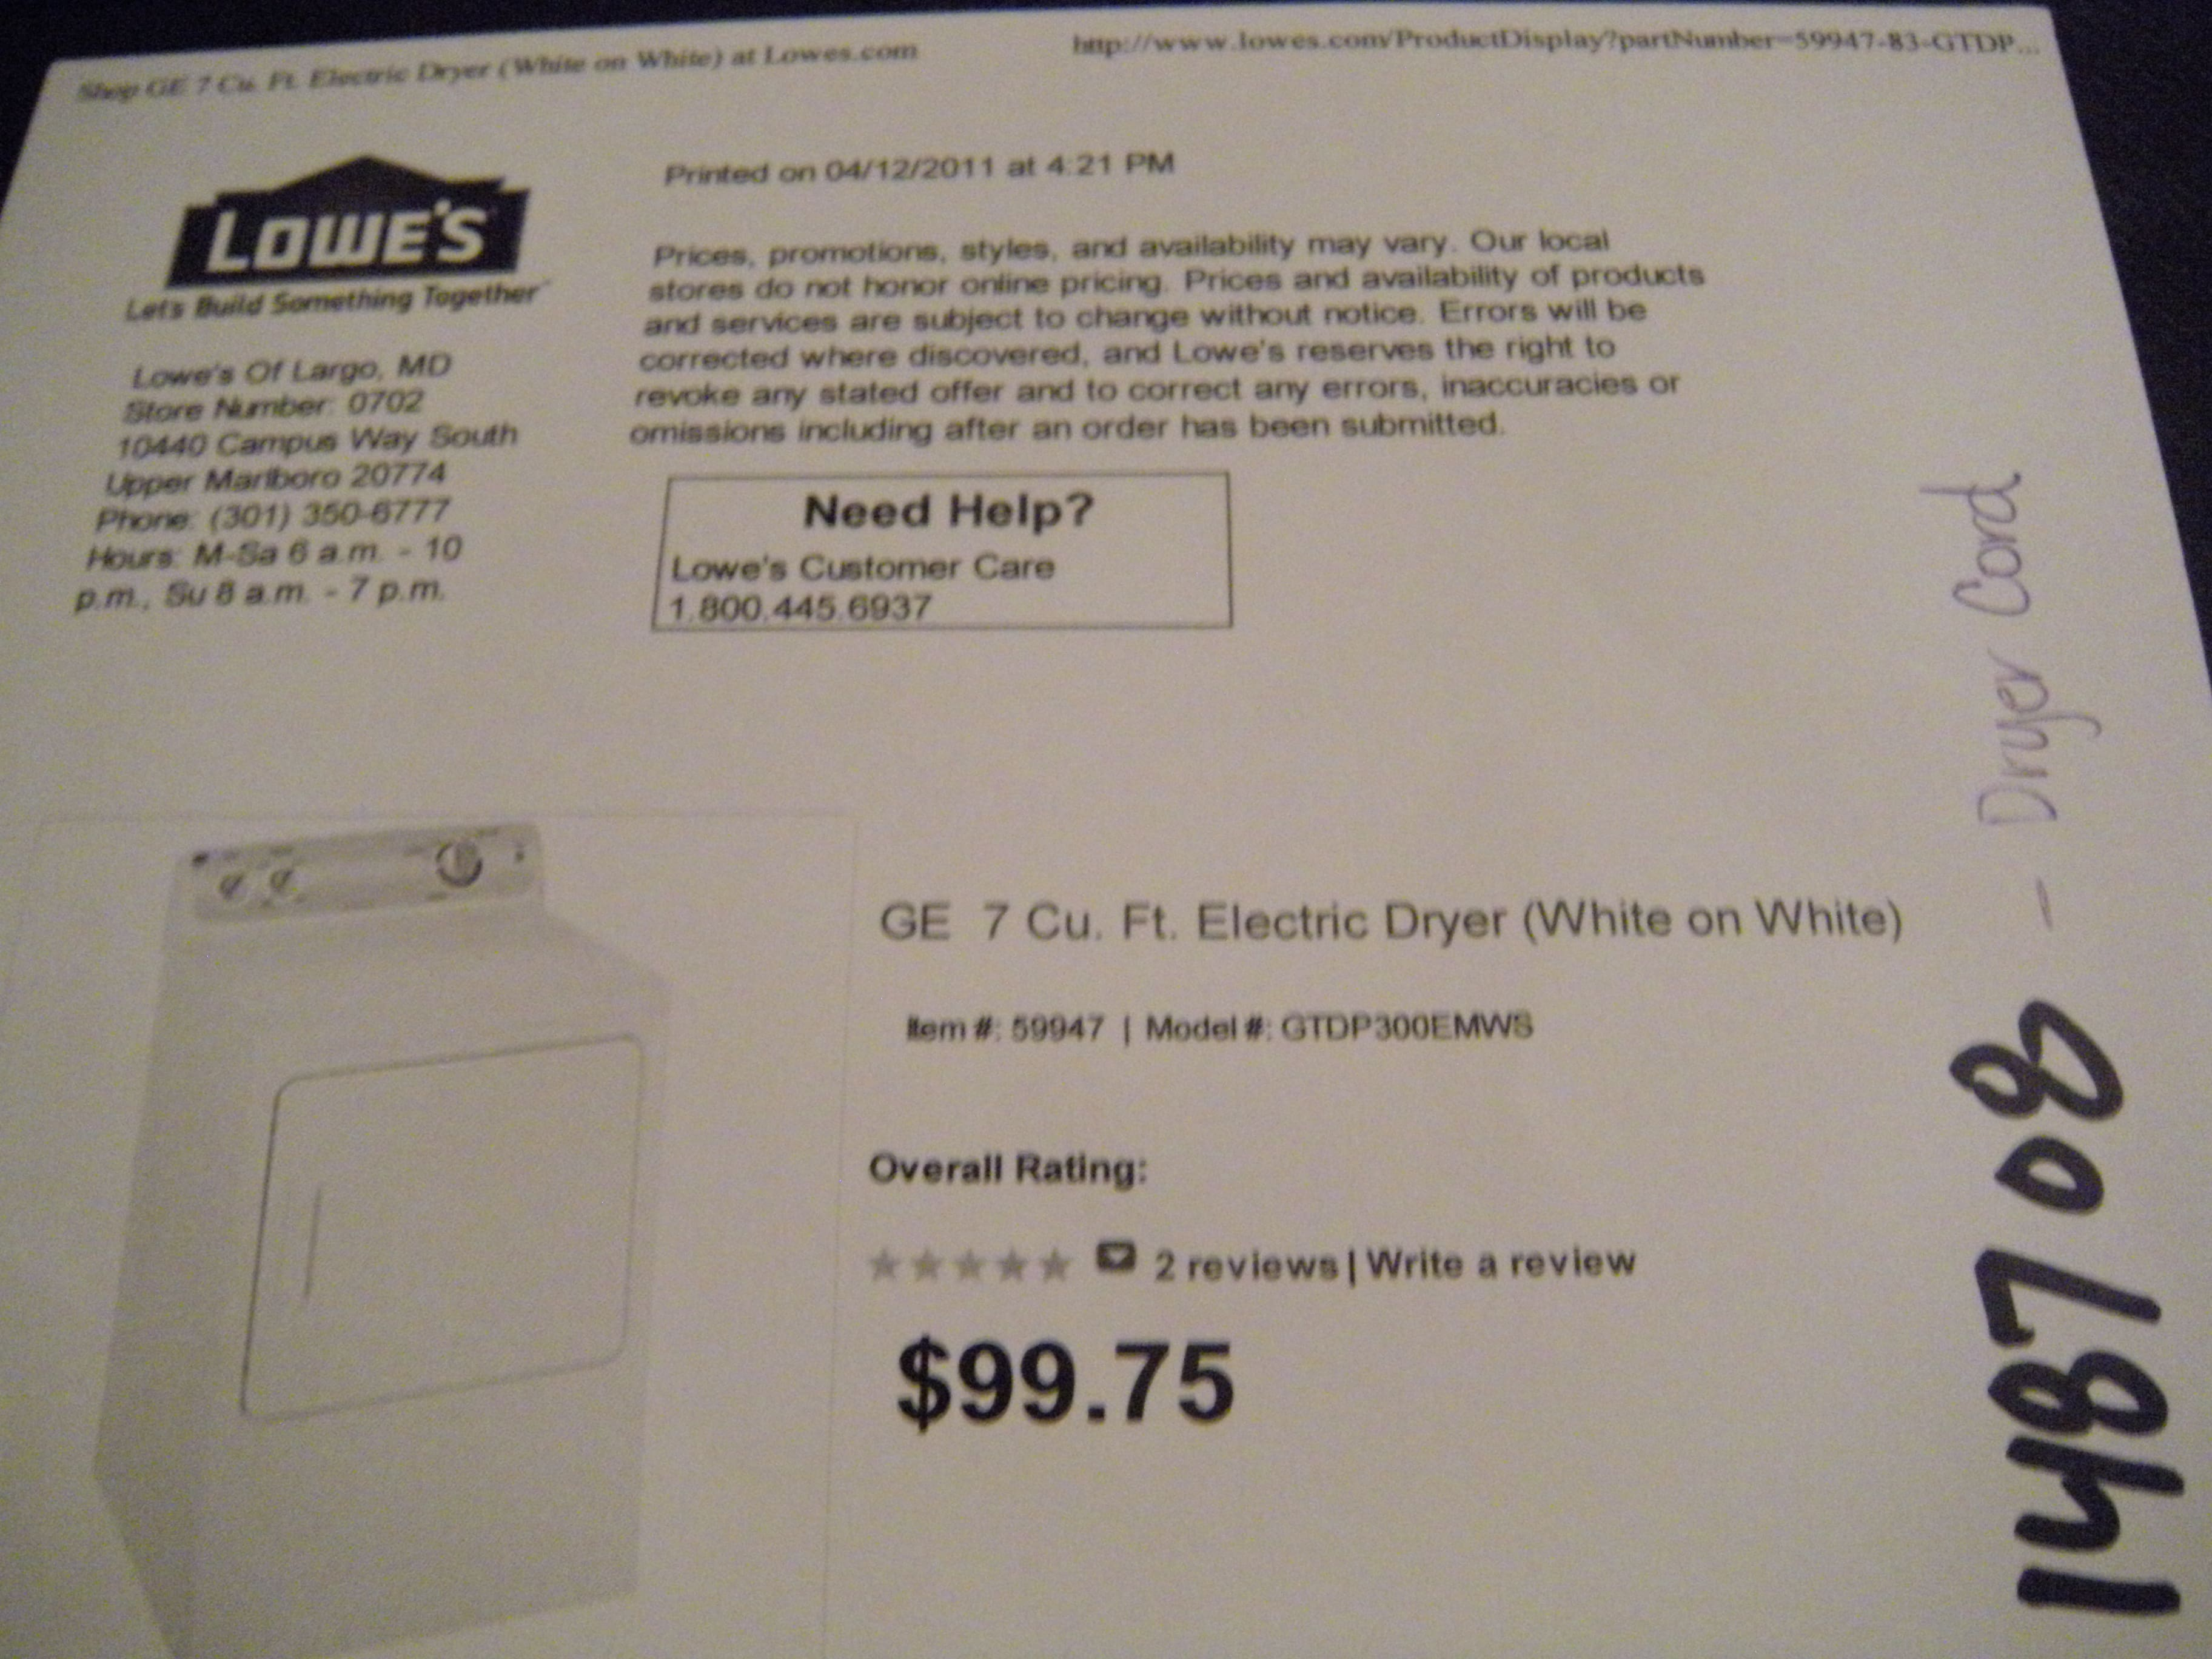 GE Electric Dryer VERY CHEAP @ LOWES $89.78!!! YMMV